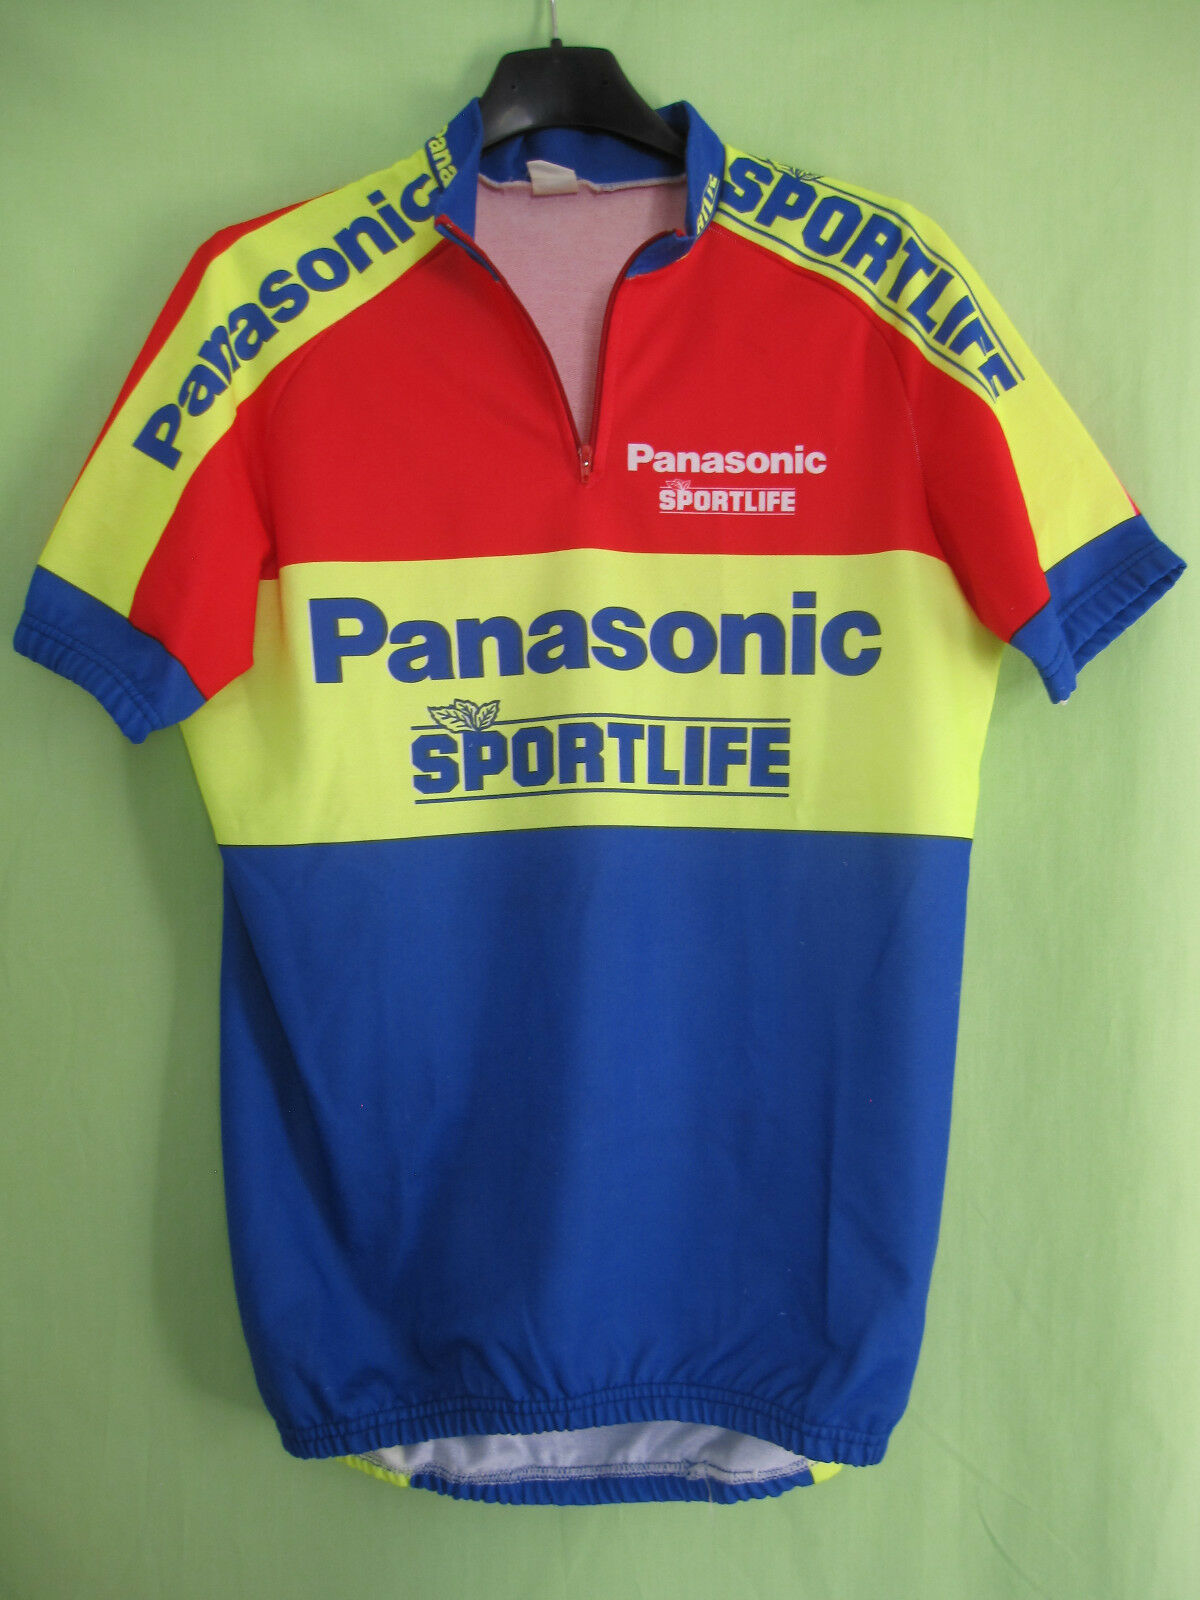 Maillot cycliste Panasonic Sportlife Team 1990 Vintage Jersey cycling - XL